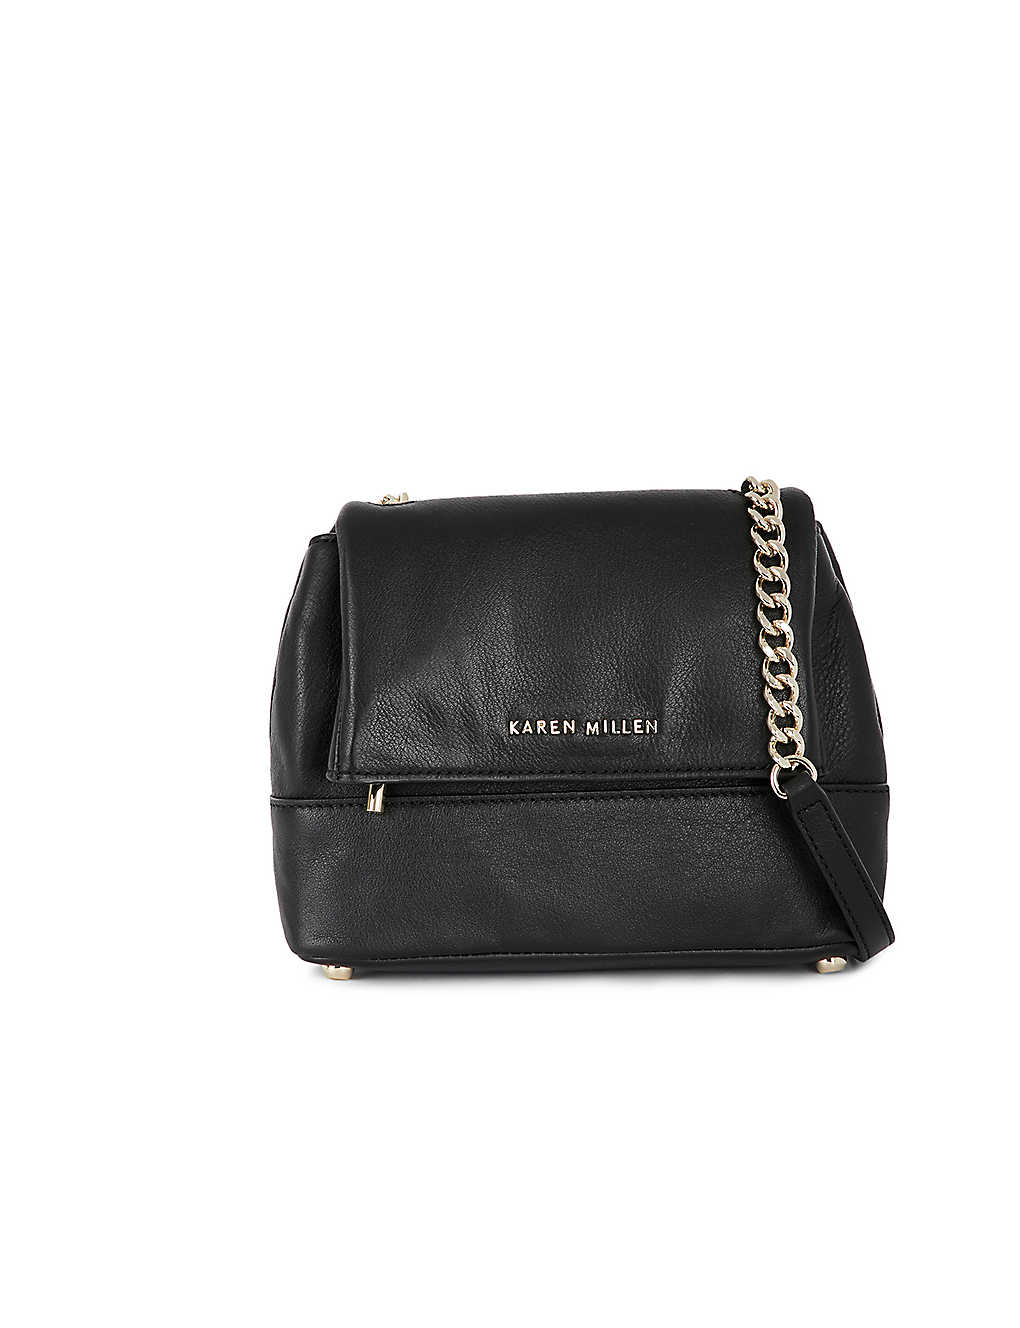 1ad477d443 KAREN MILLEN - Santa Monica leather shoulder bag | Selfridges.com